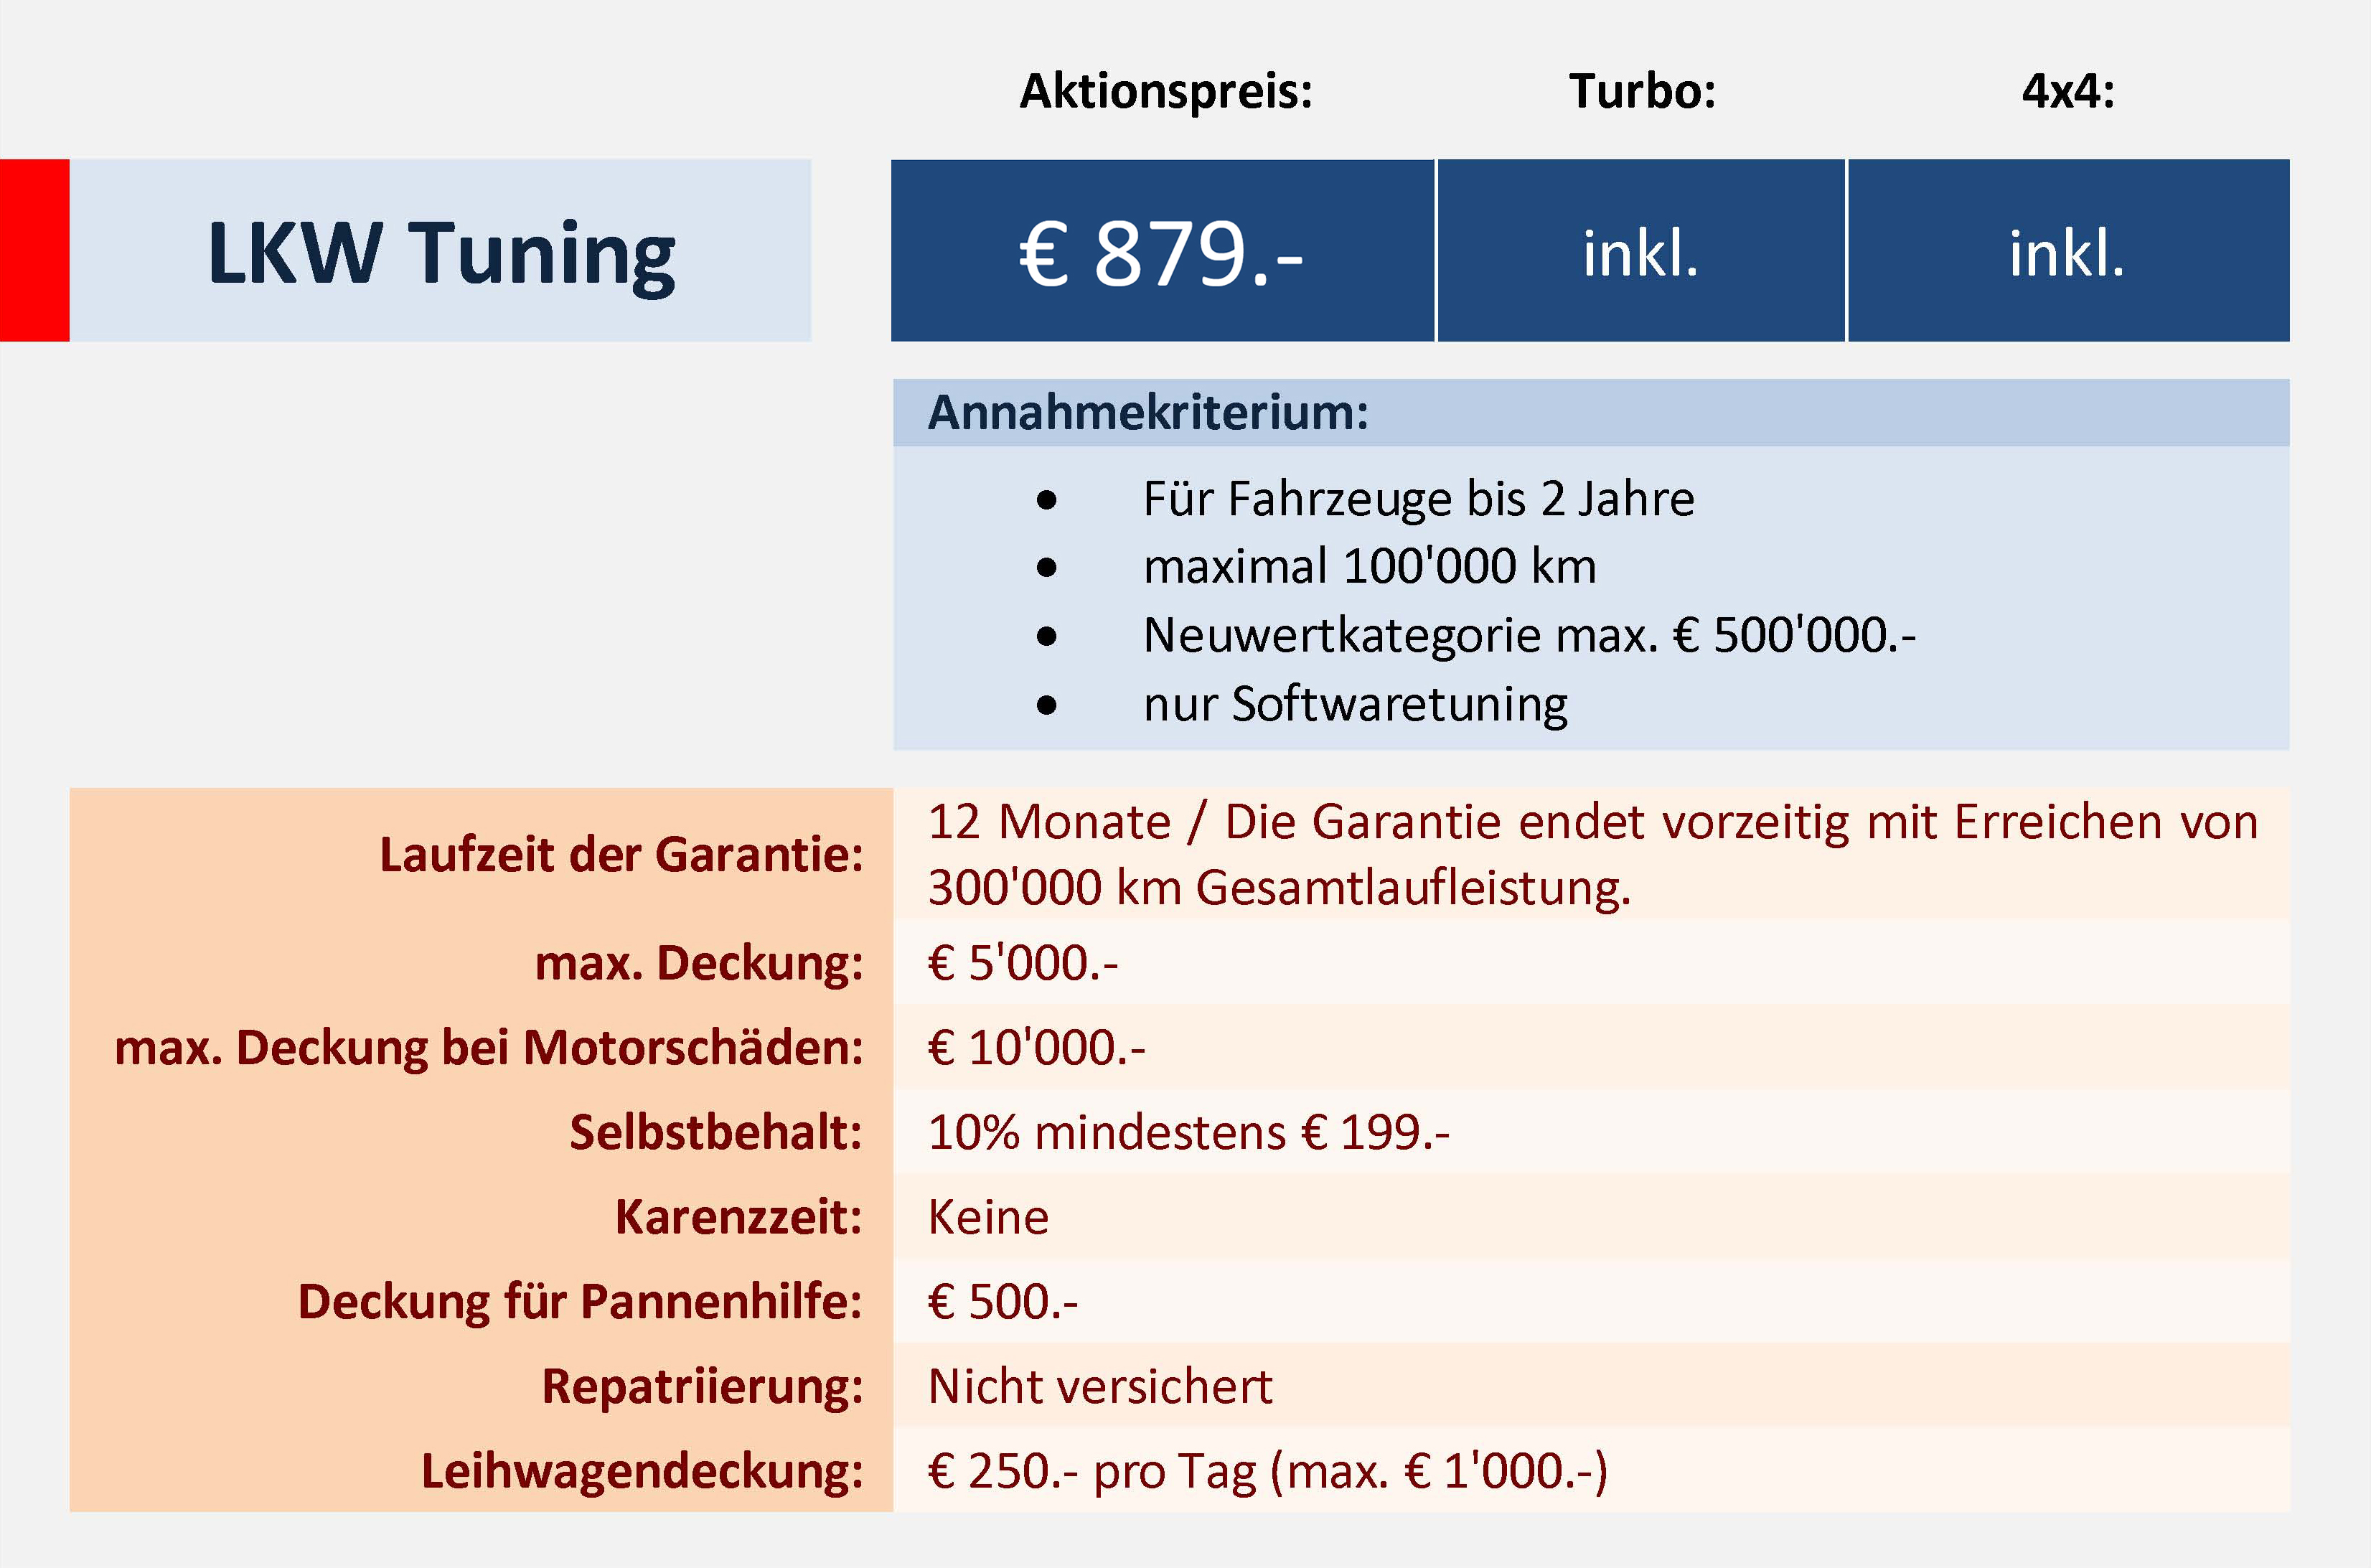 LKW Tuning Details